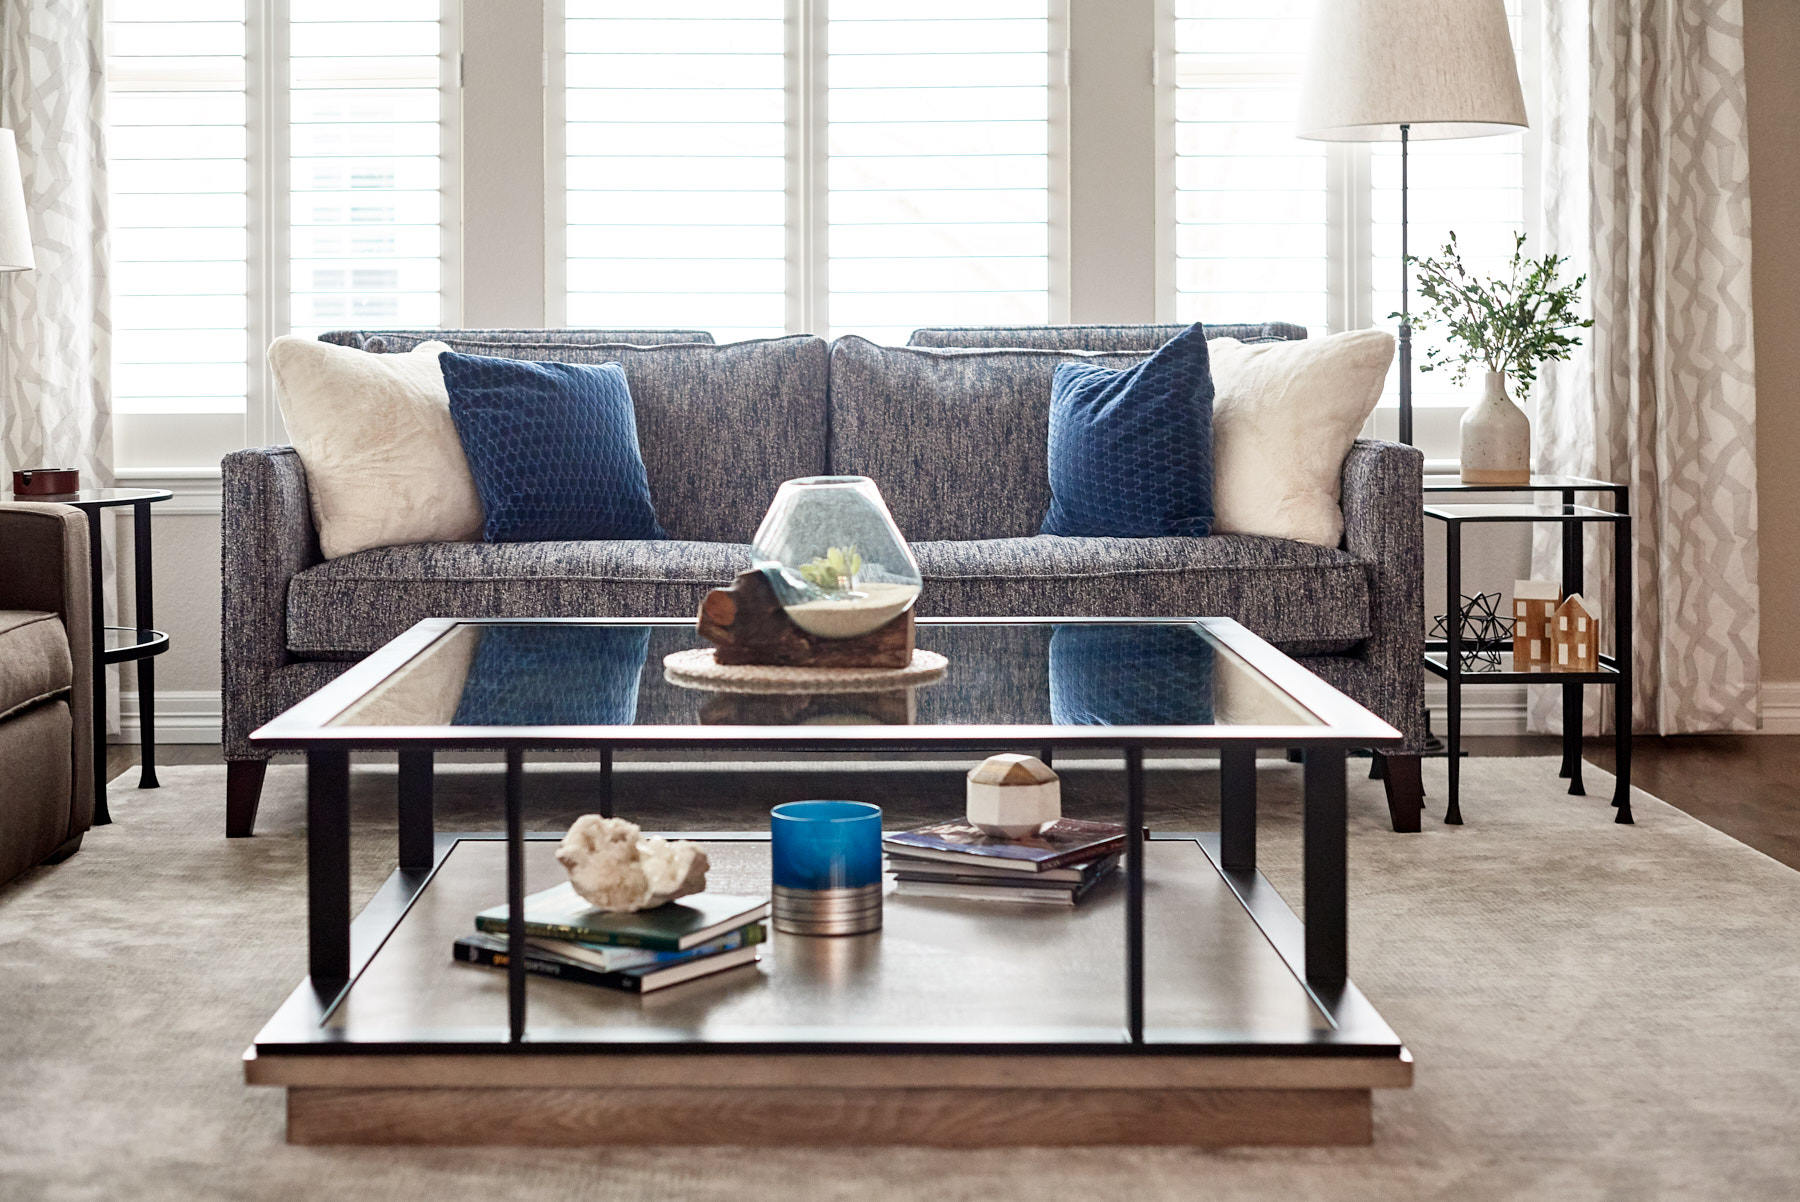 328 Design Group sofa interior coffee table select design complete.jpg